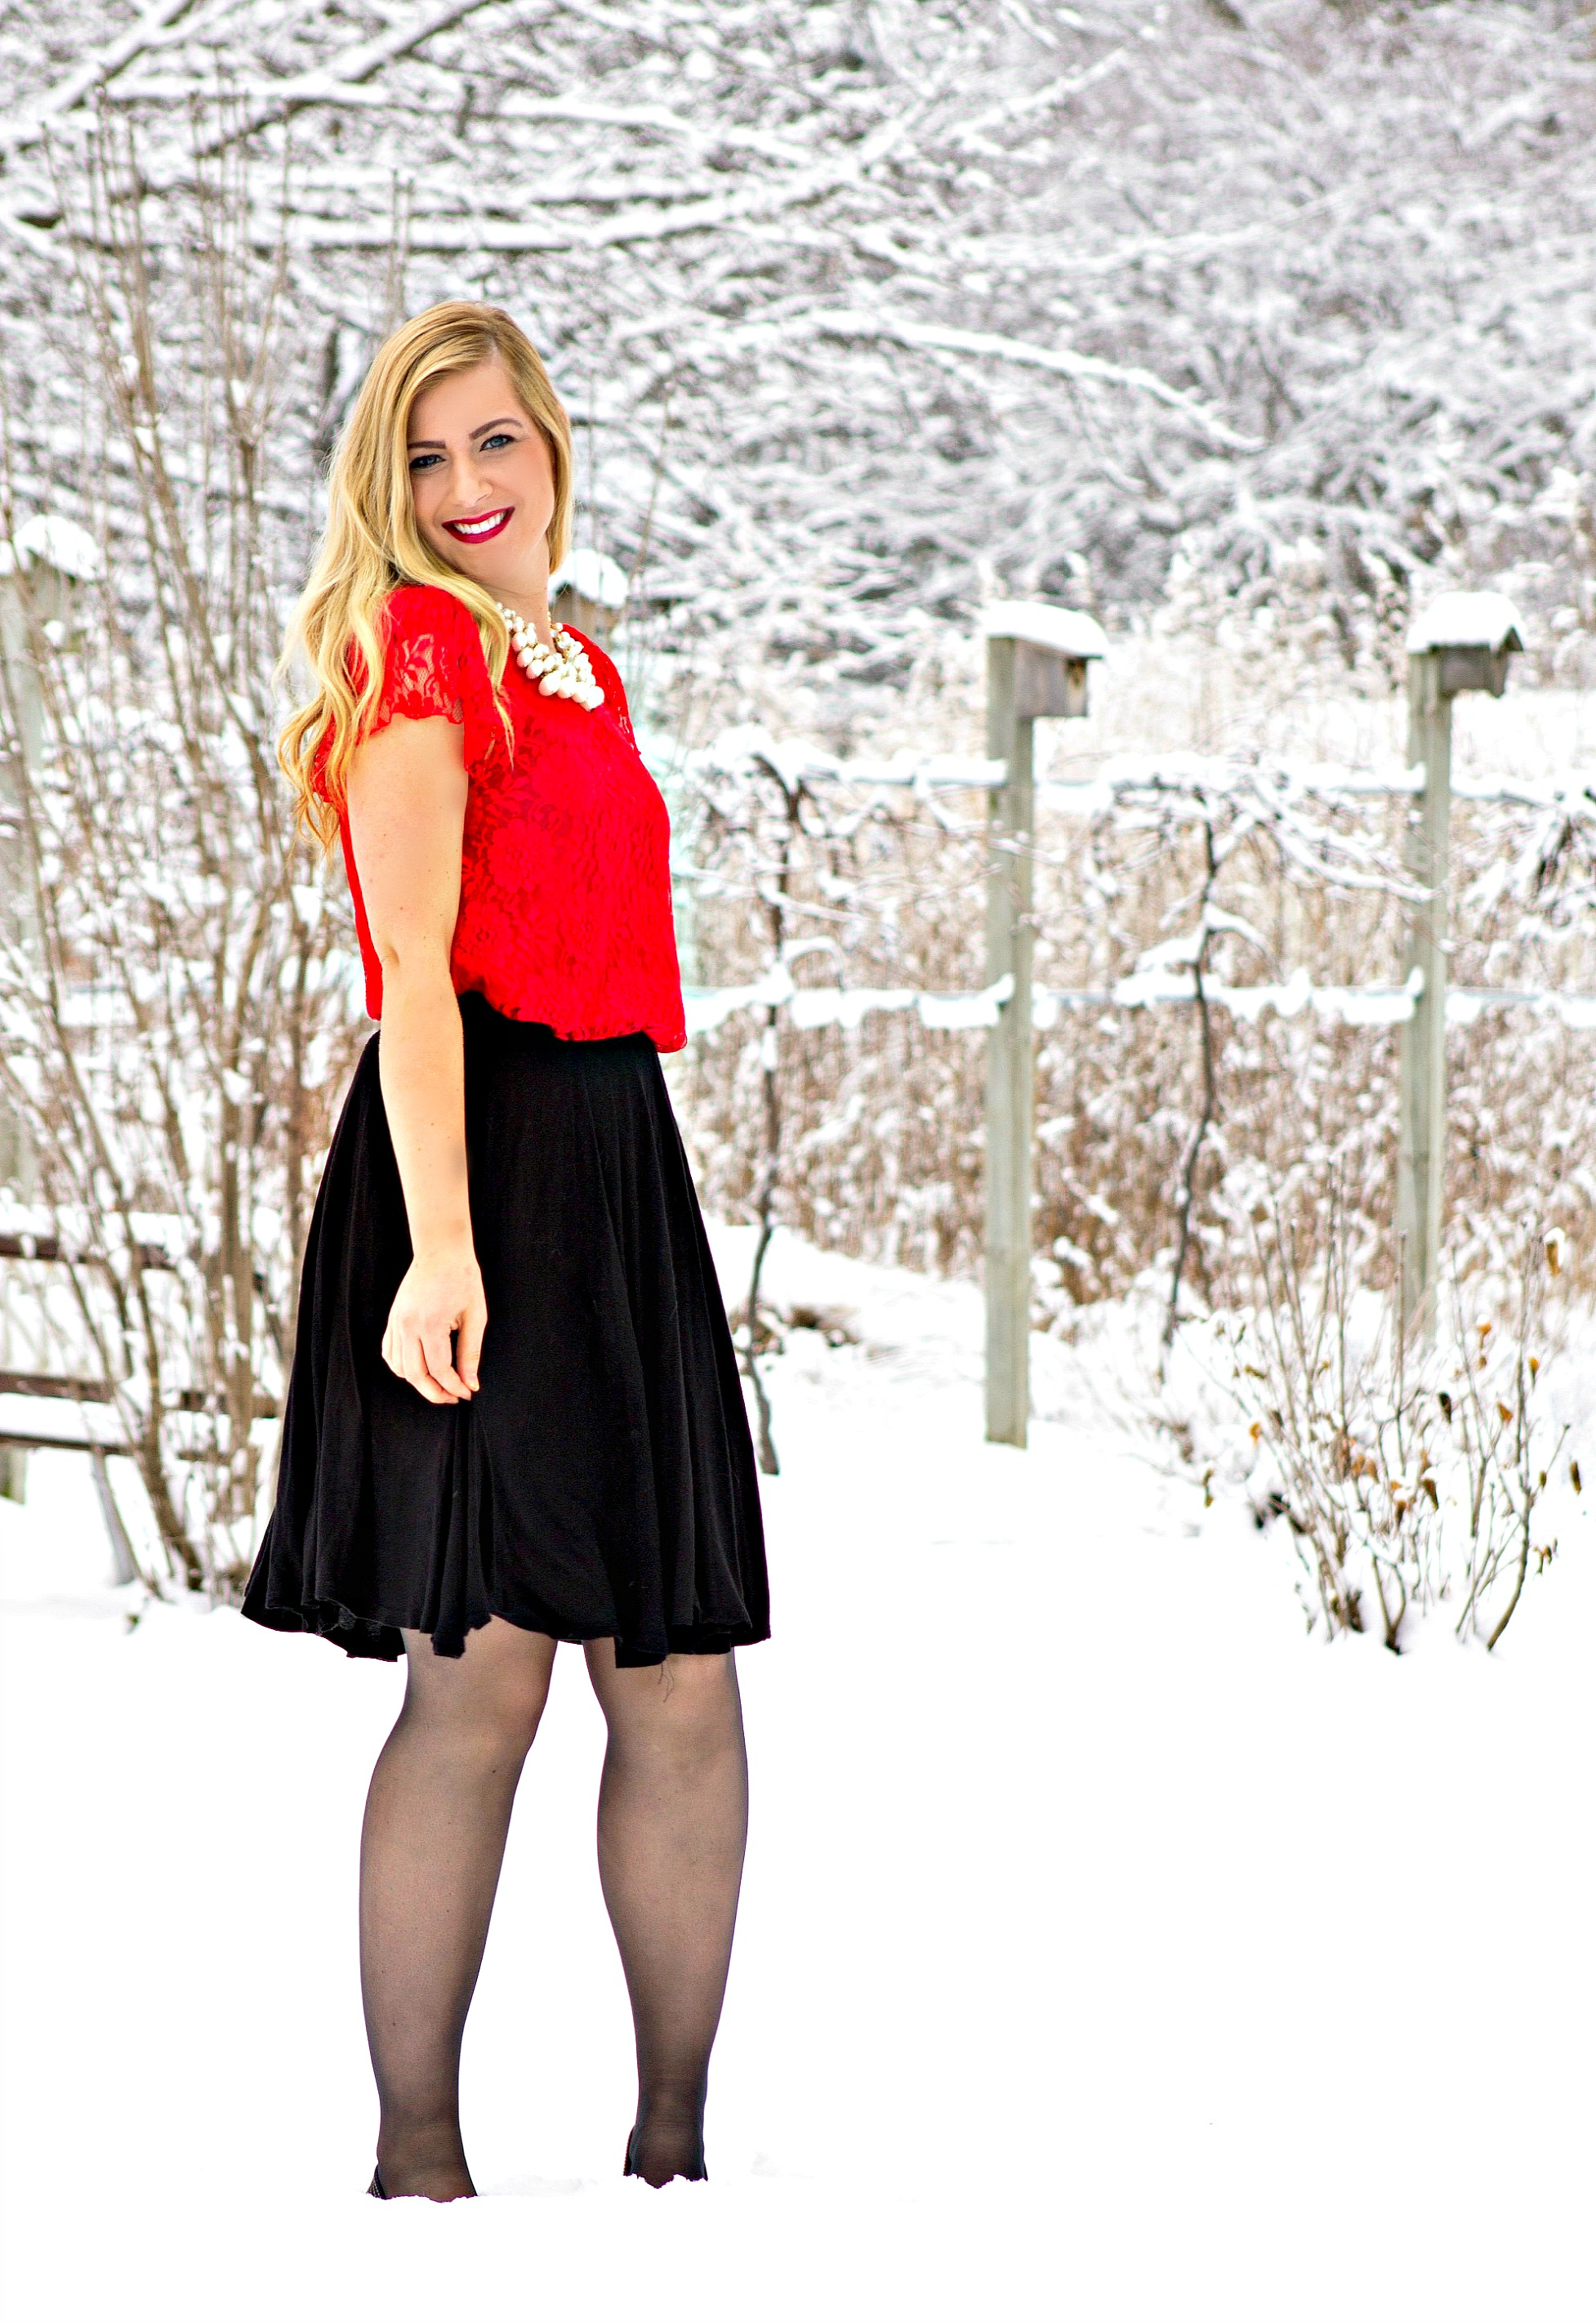 Red Lace Top + Black Skirt for Christmas